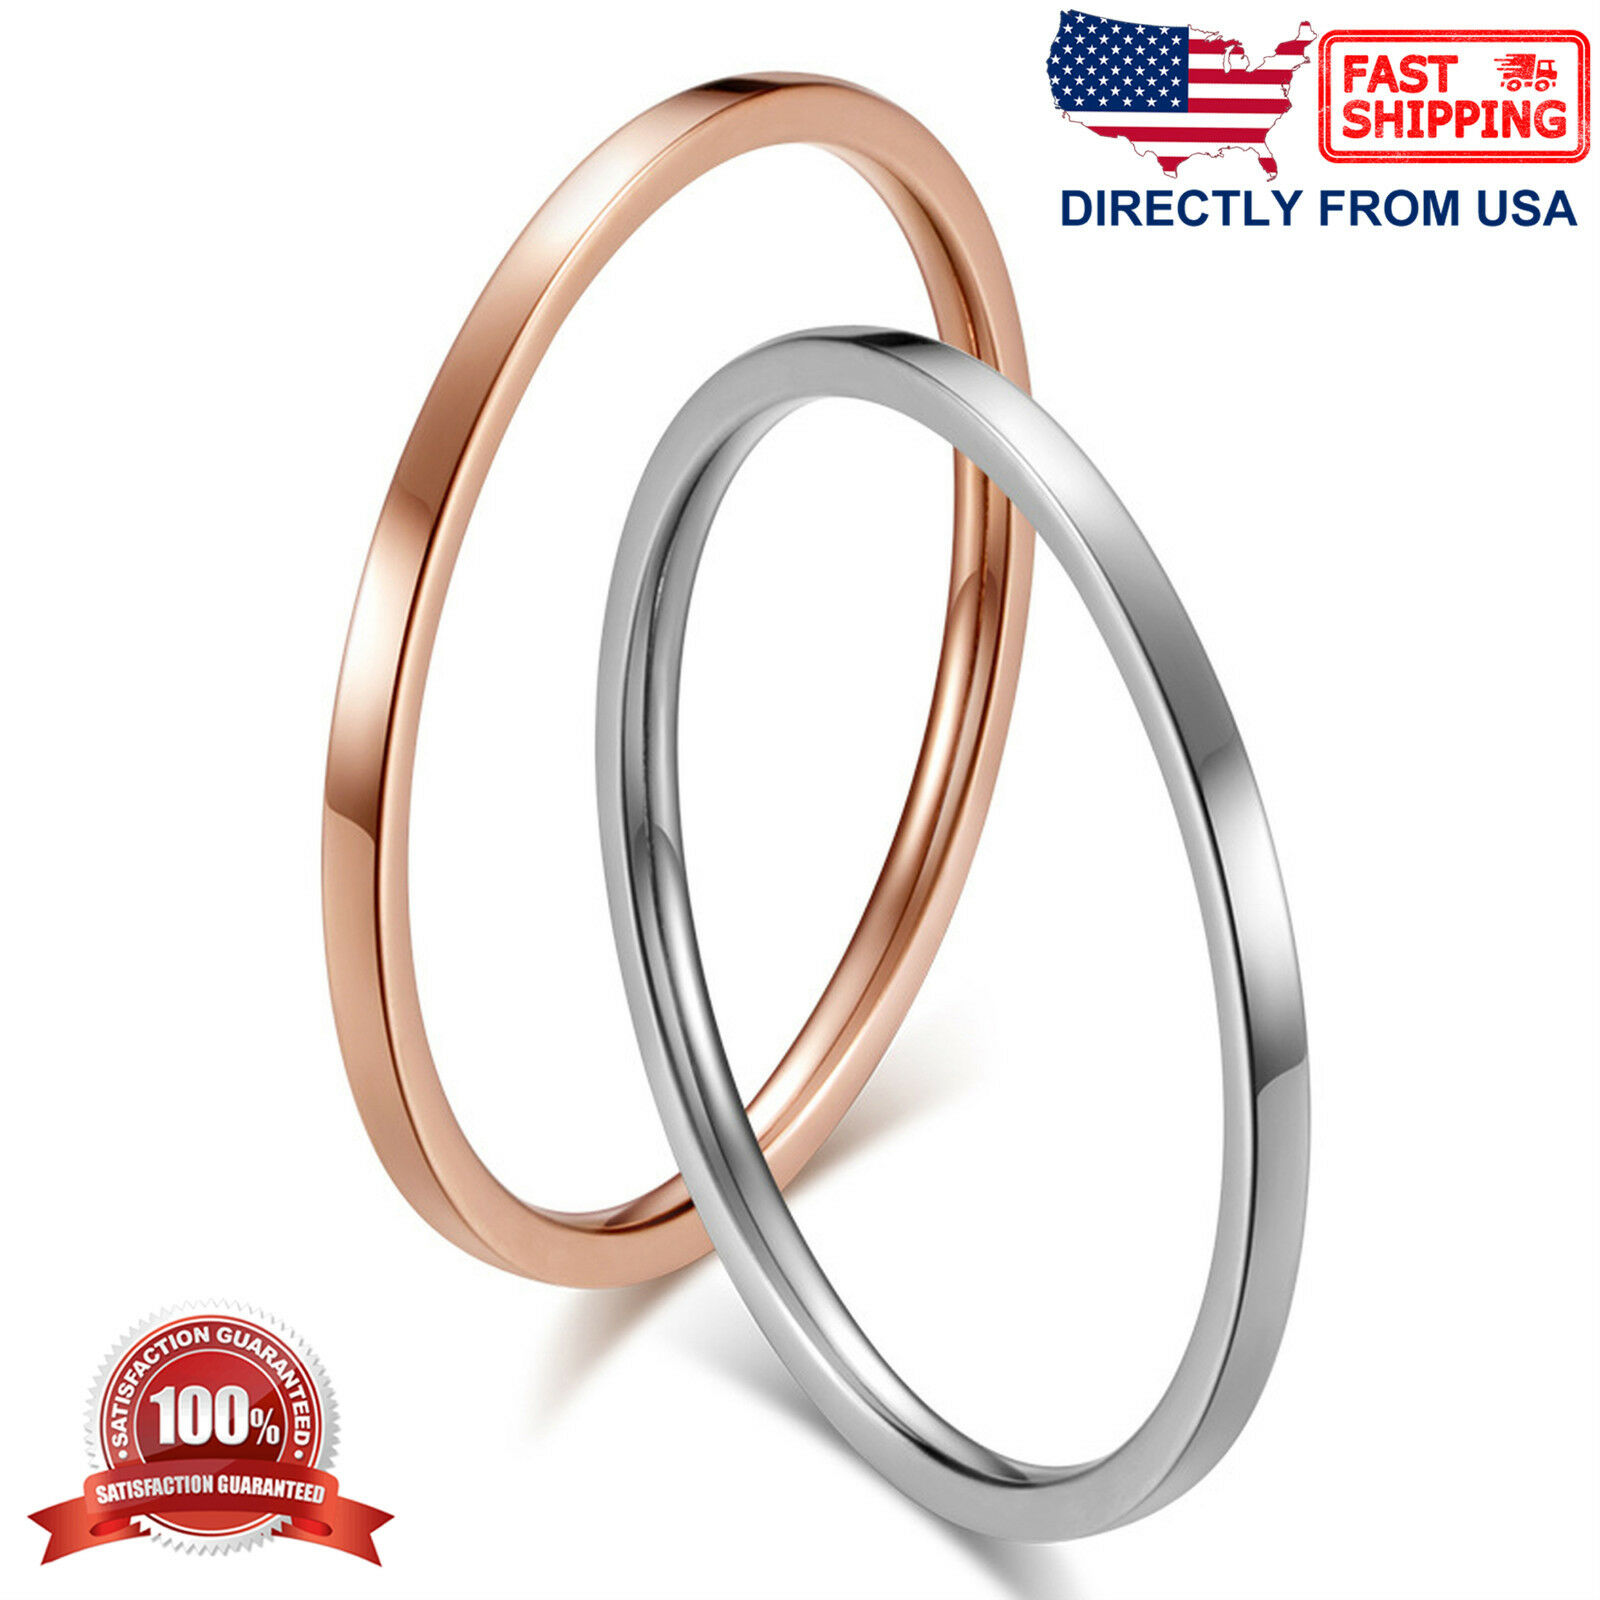 Women's Stainless Steel 1mm Thin Stackable Ring Fashion Jewelry